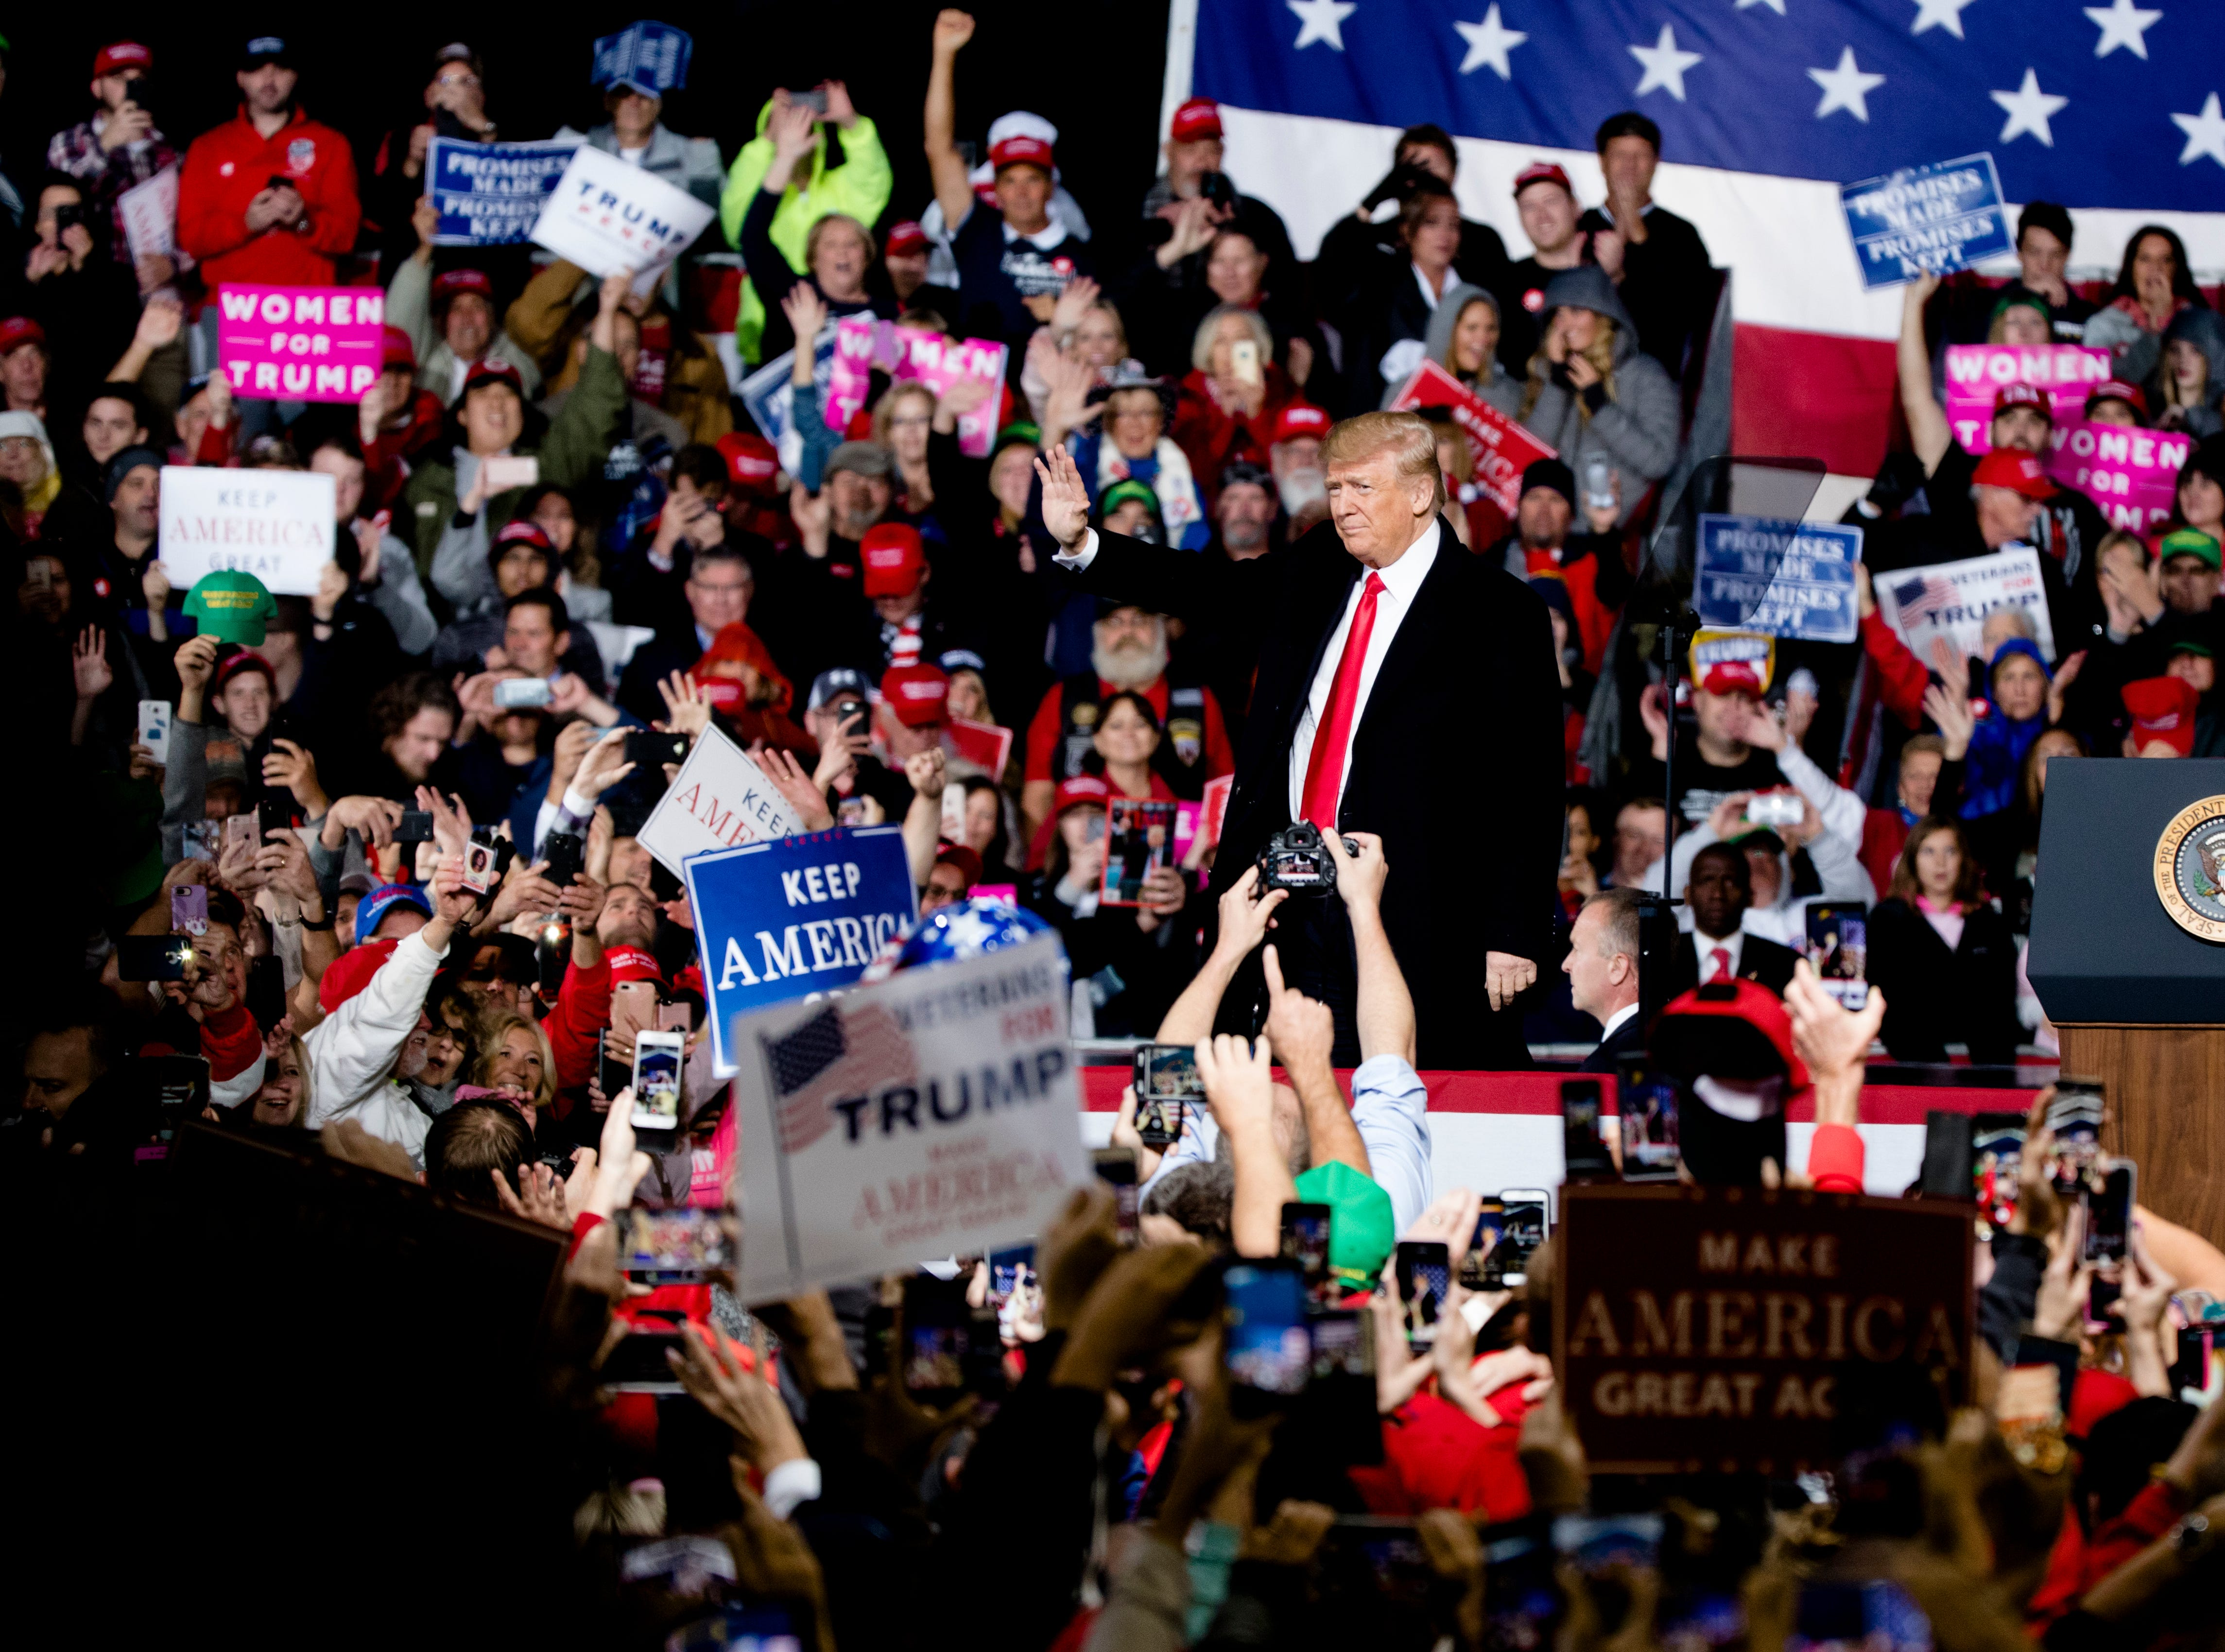 President Donald J. Trump speaks during President Donald J. Trump's Make America Great Again Rally in Lebanon, Ohio, on Friday, Oct. 12, 2018.